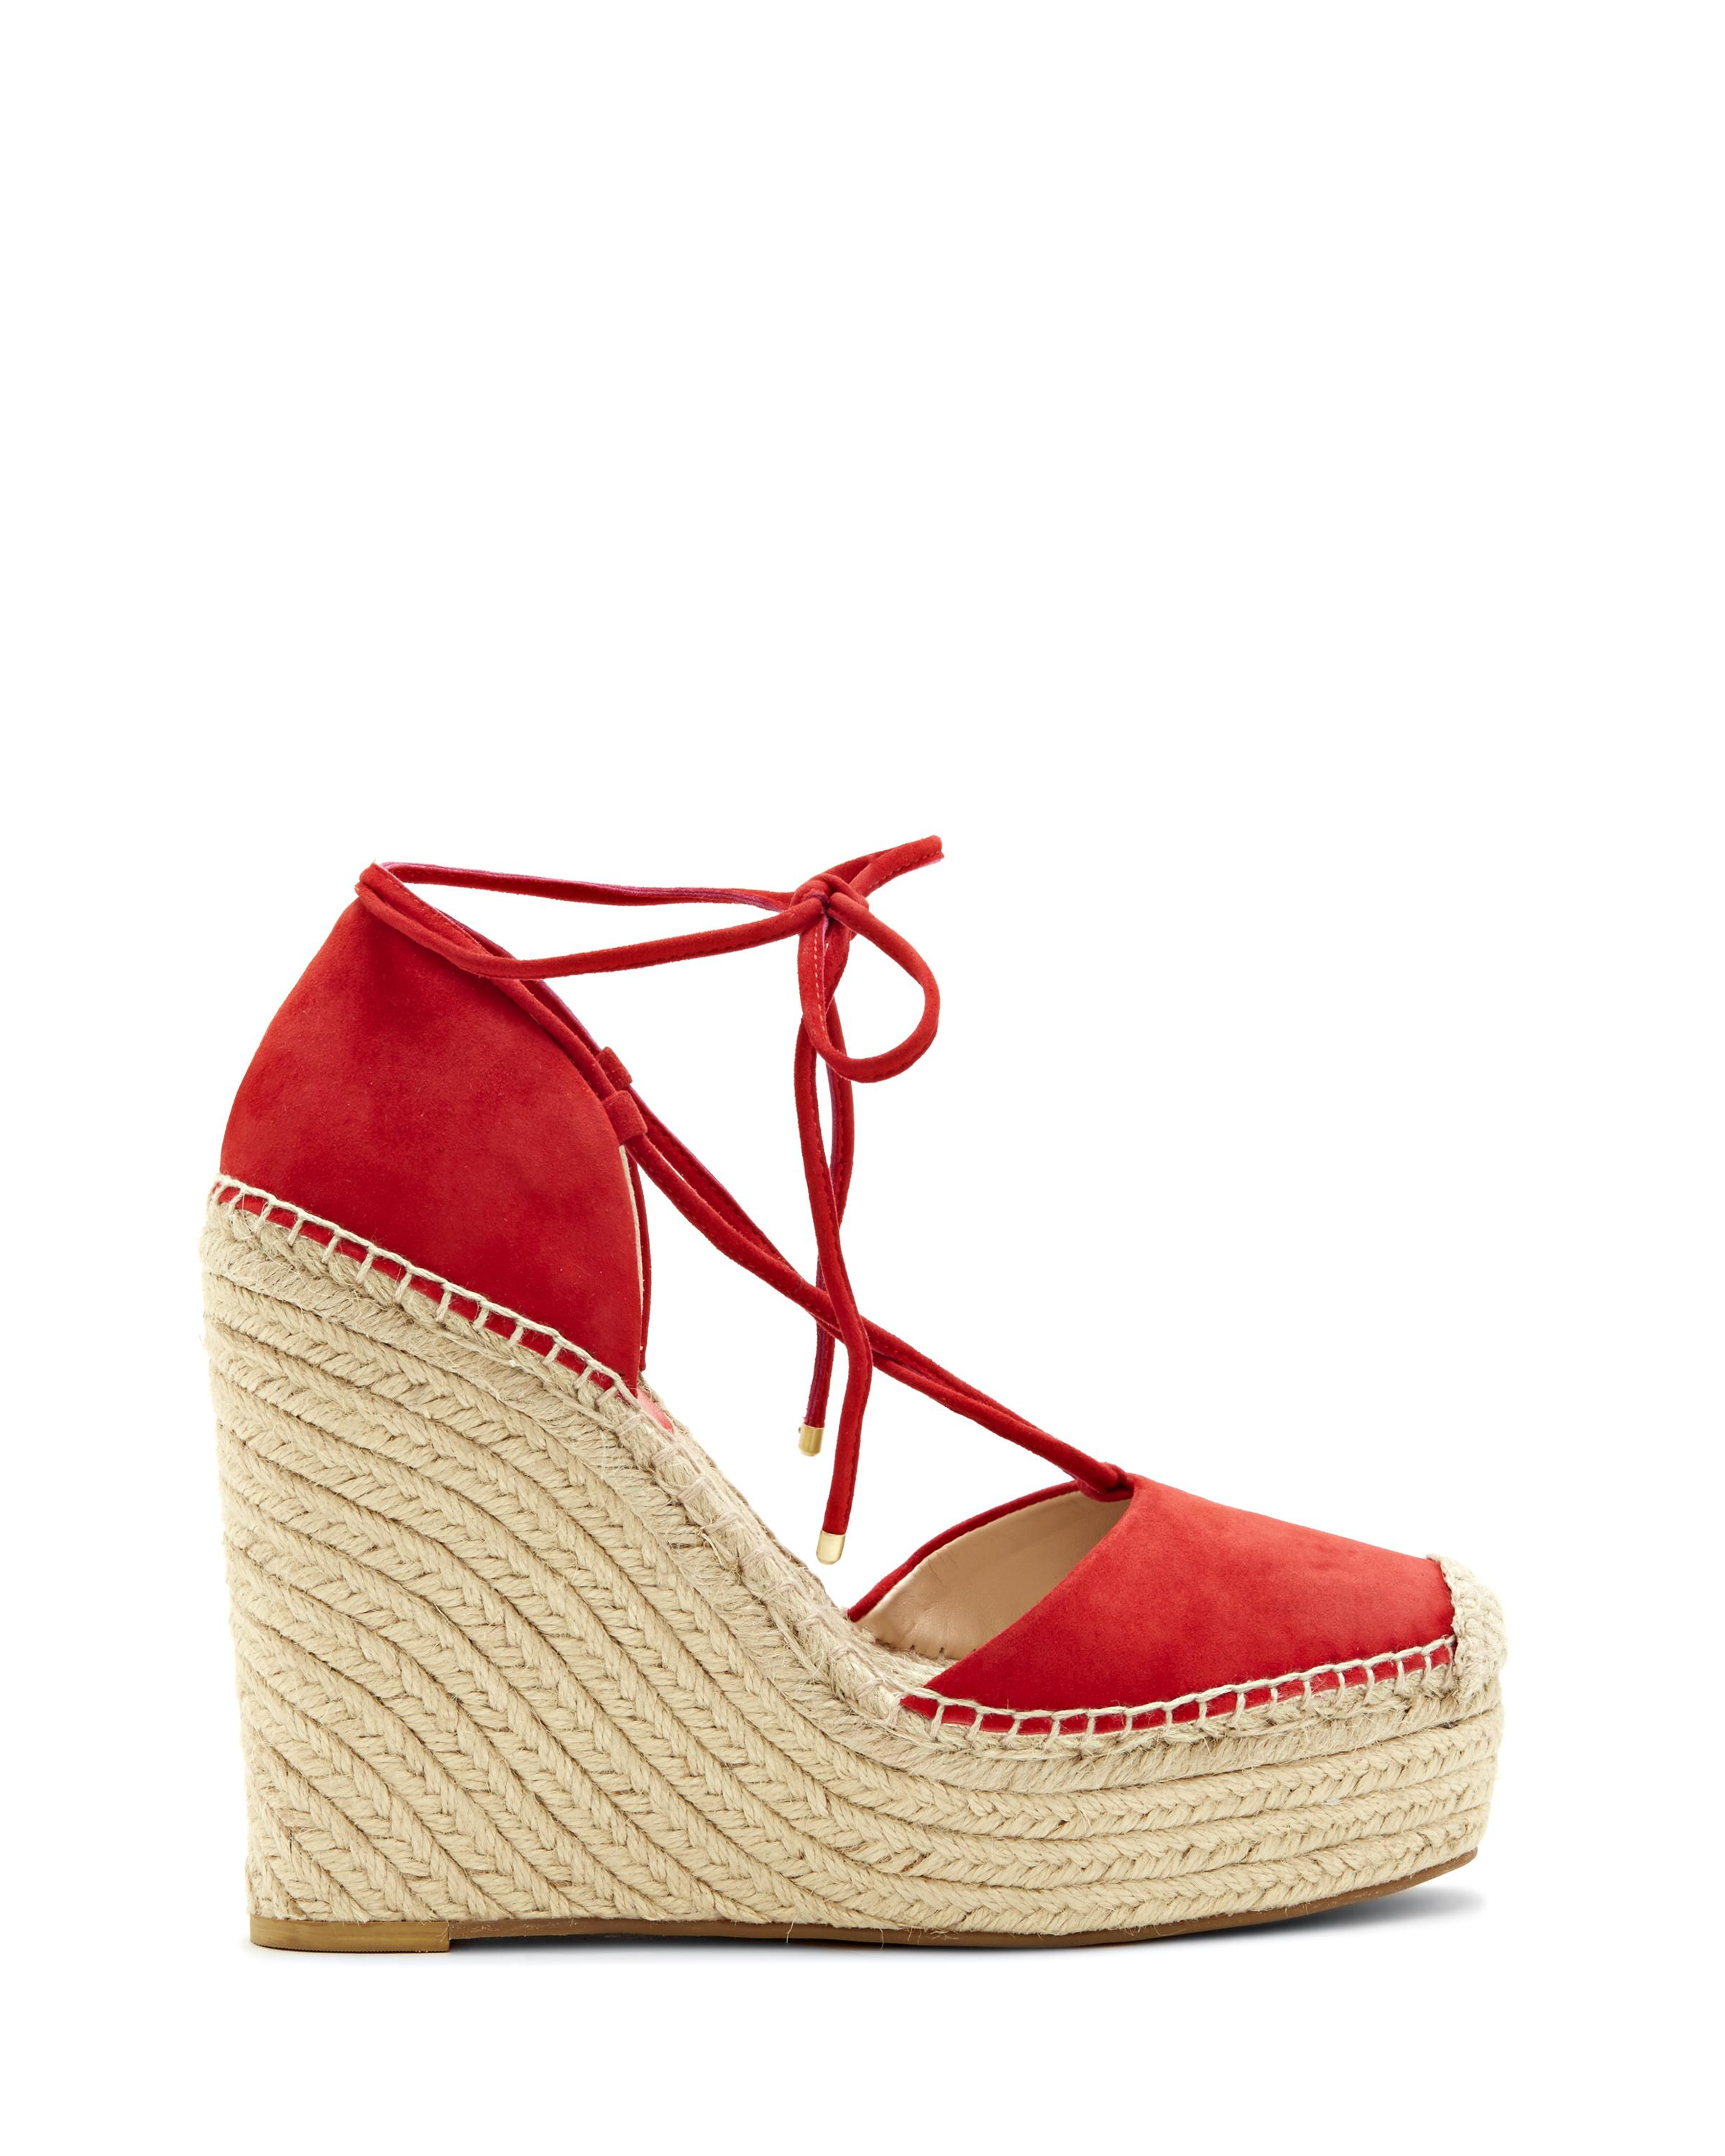 Vince camuto Airlia